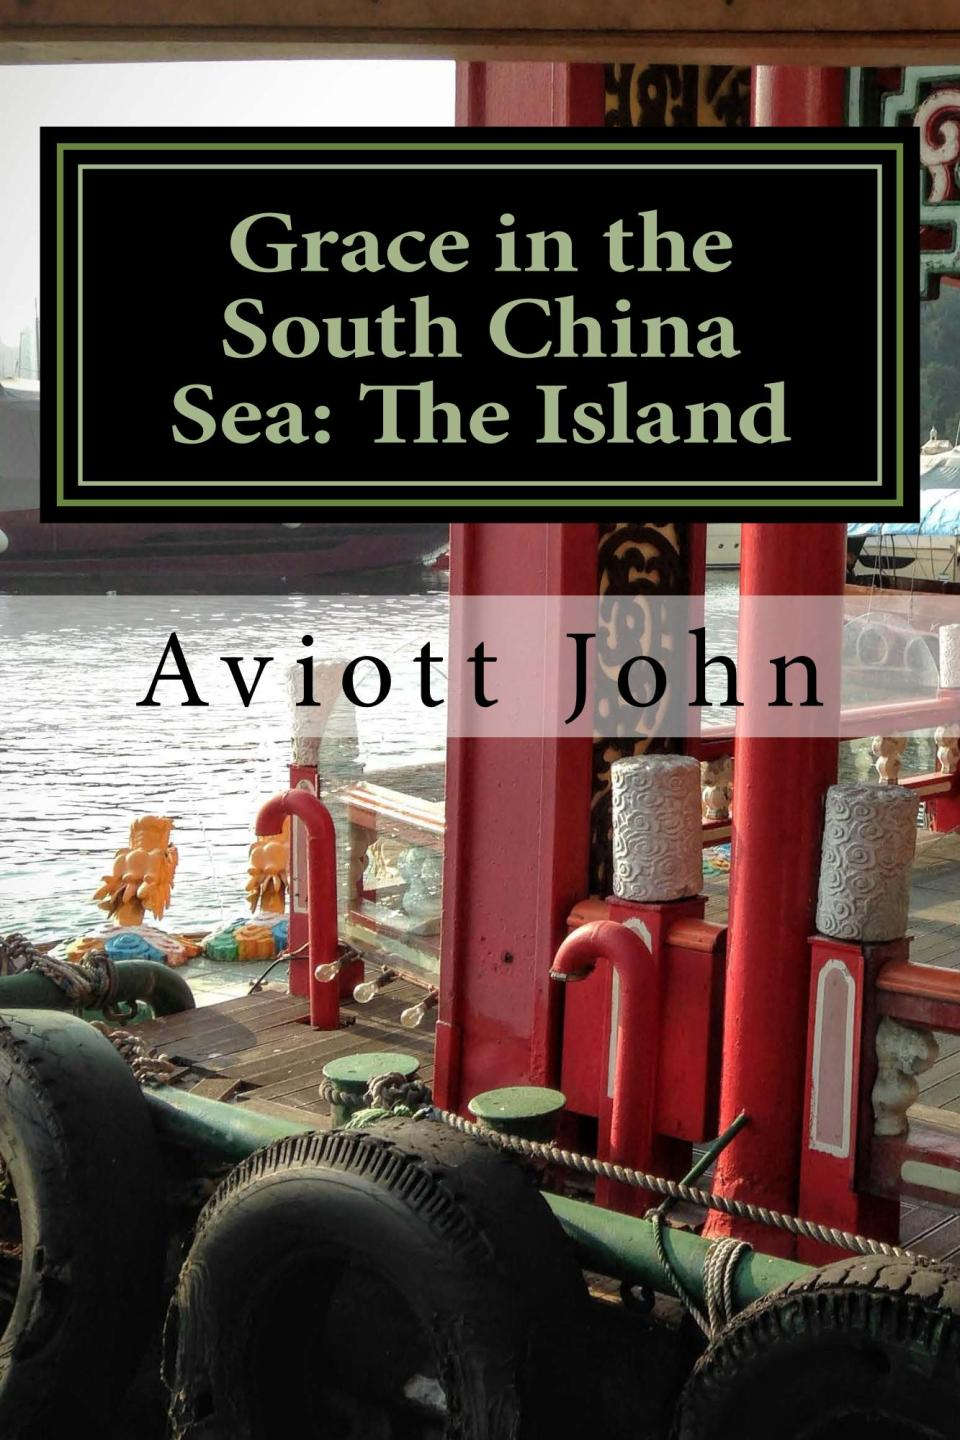 Boats, sampans in Abderdeen Harbor, Hong Kong. Cover photograph by M. MacInnes